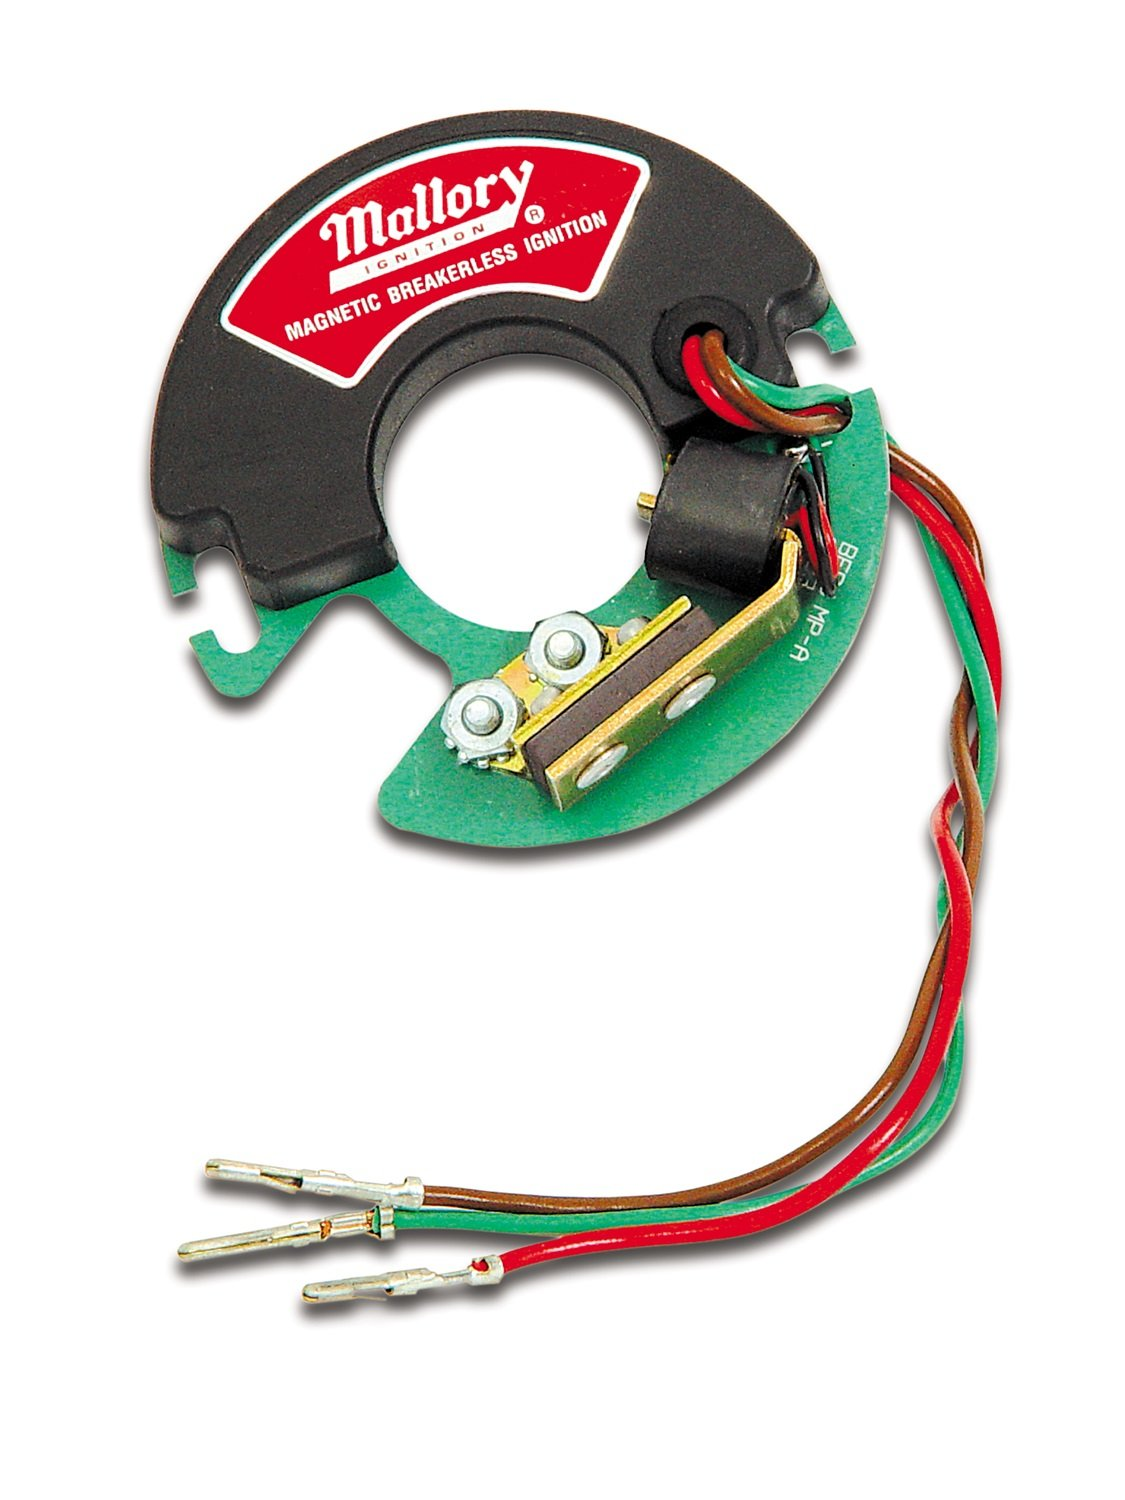 Amazon.com: Mallory 609 Magnetic Ignition Module: Automotive